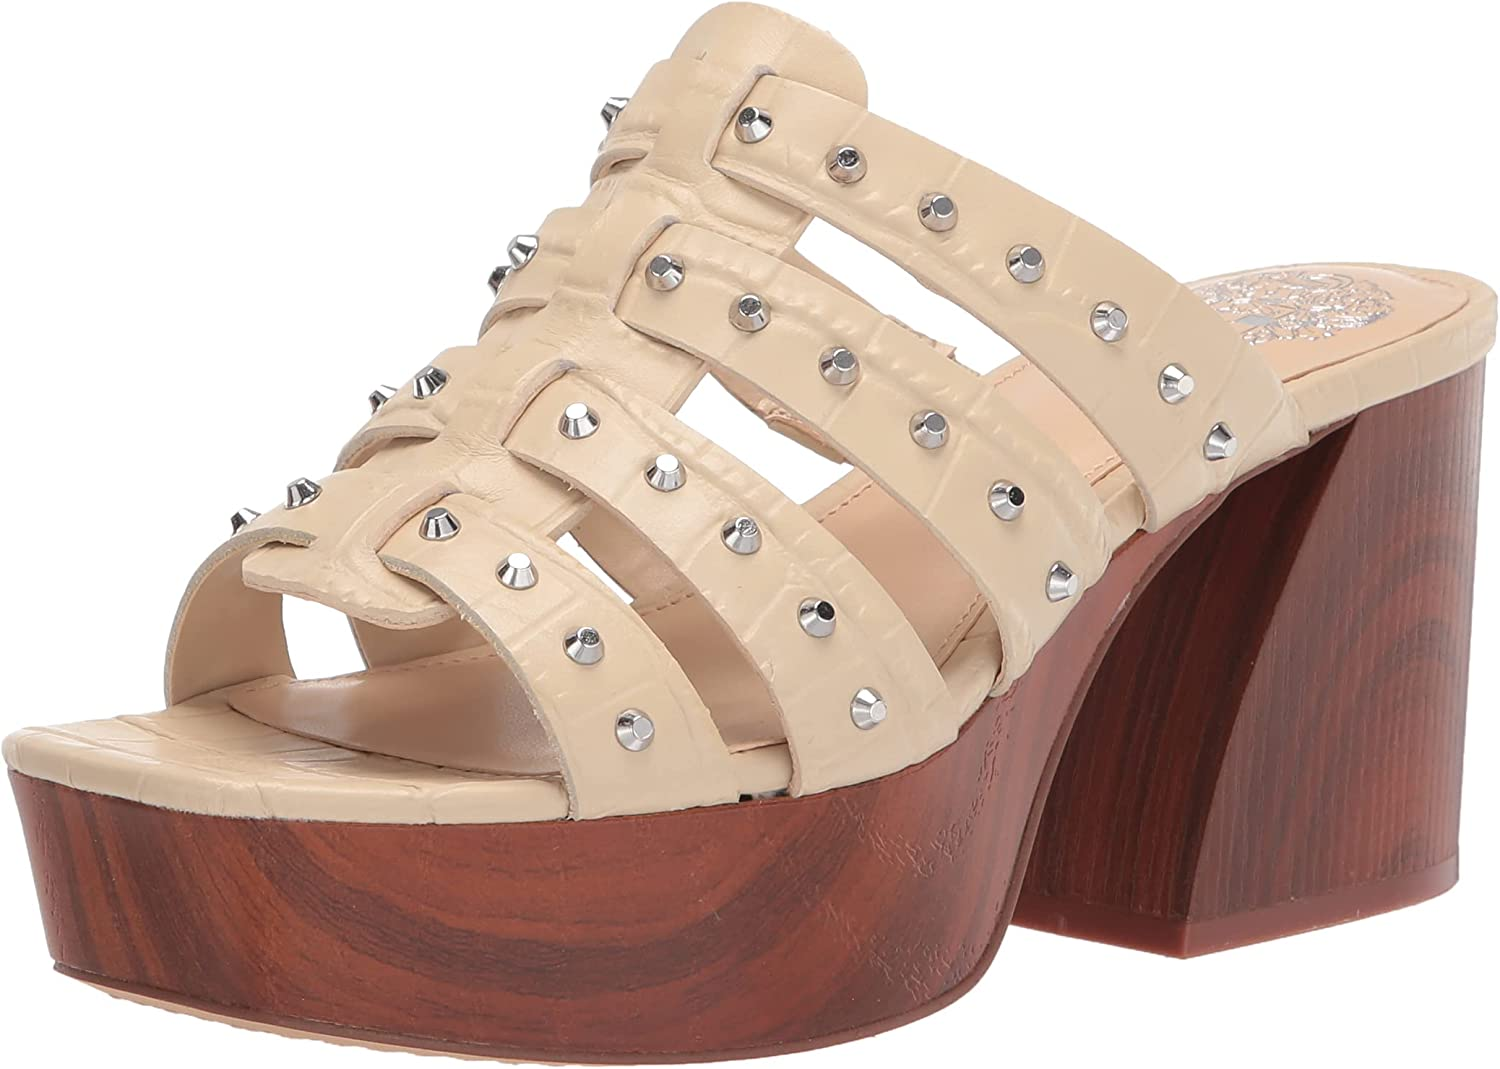 OFFicial store Vince Camuto Women's Charmie Platform Heeled Free shipping anywhere in the nation Sandal